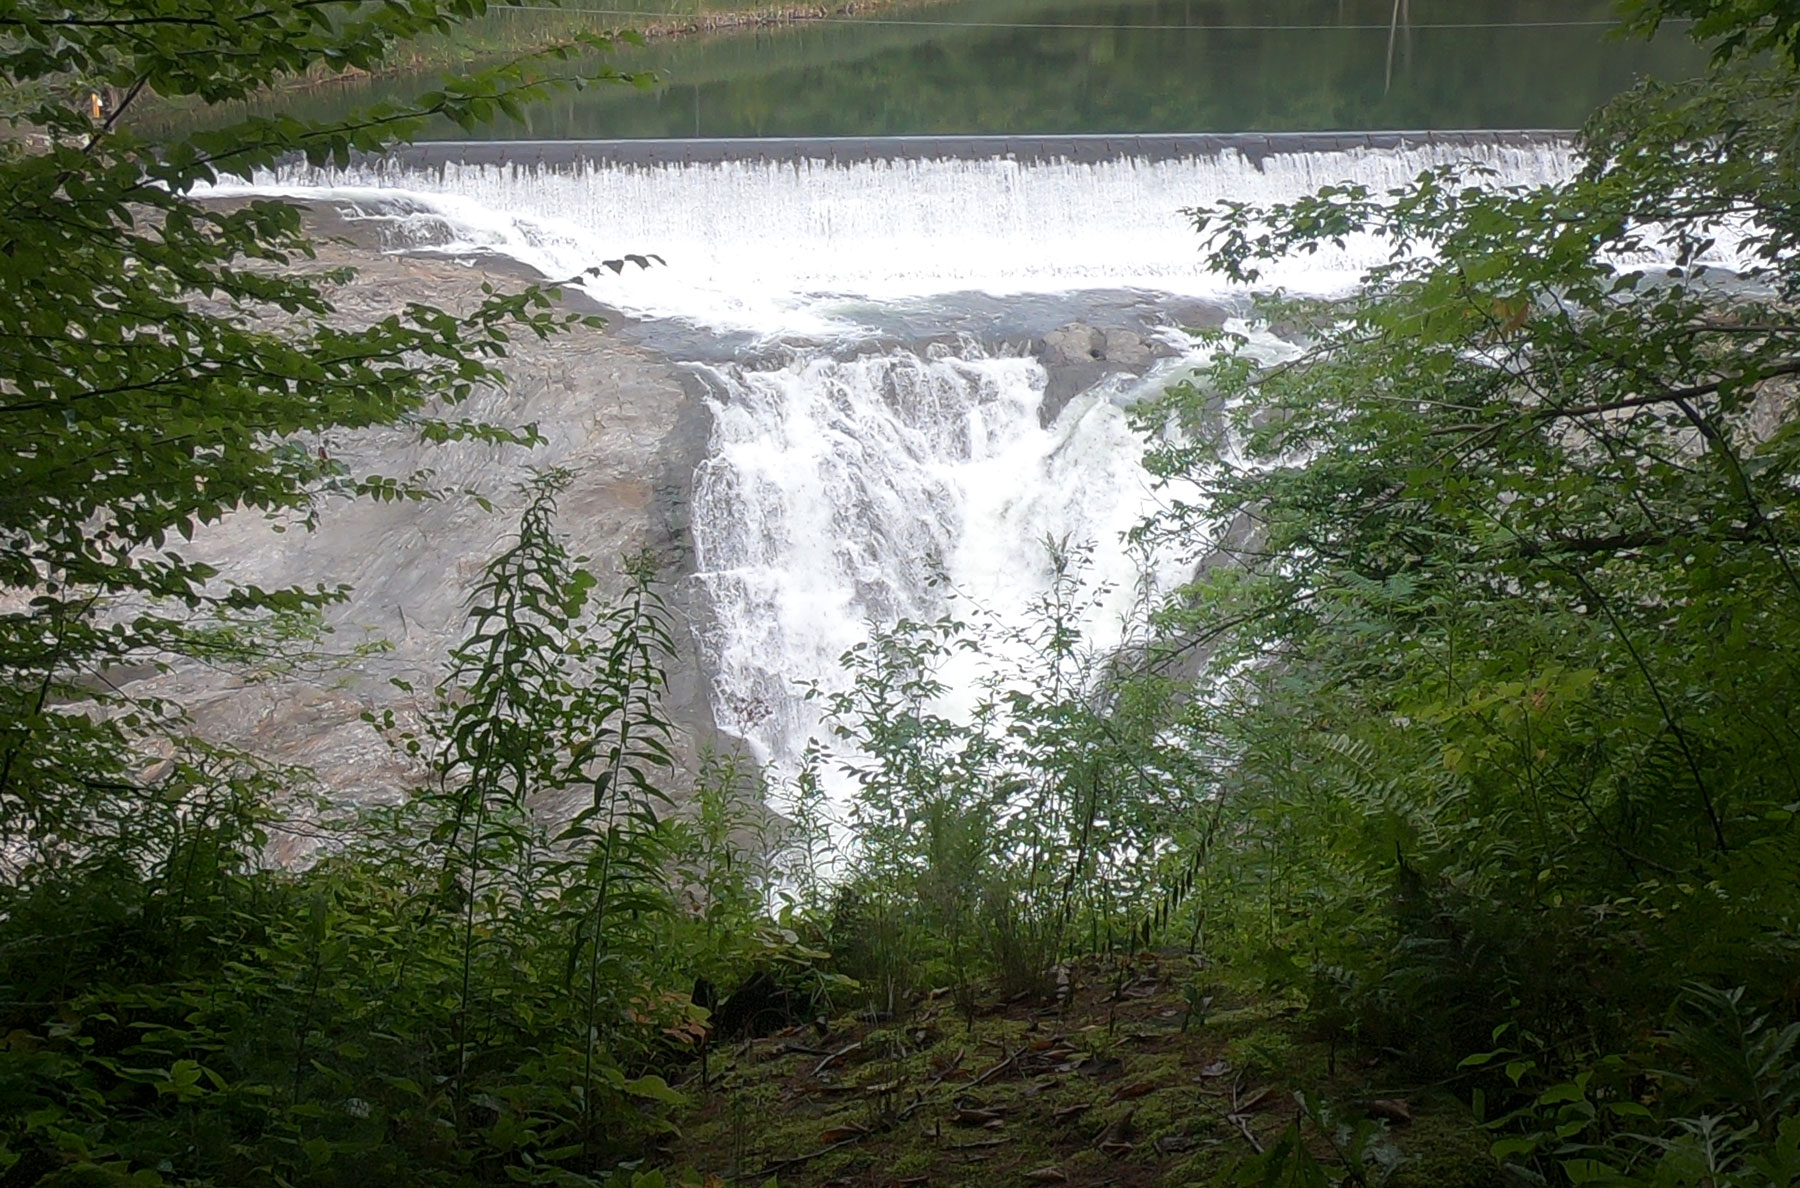 View of waterfalls at Quechee Gorge, Vermont